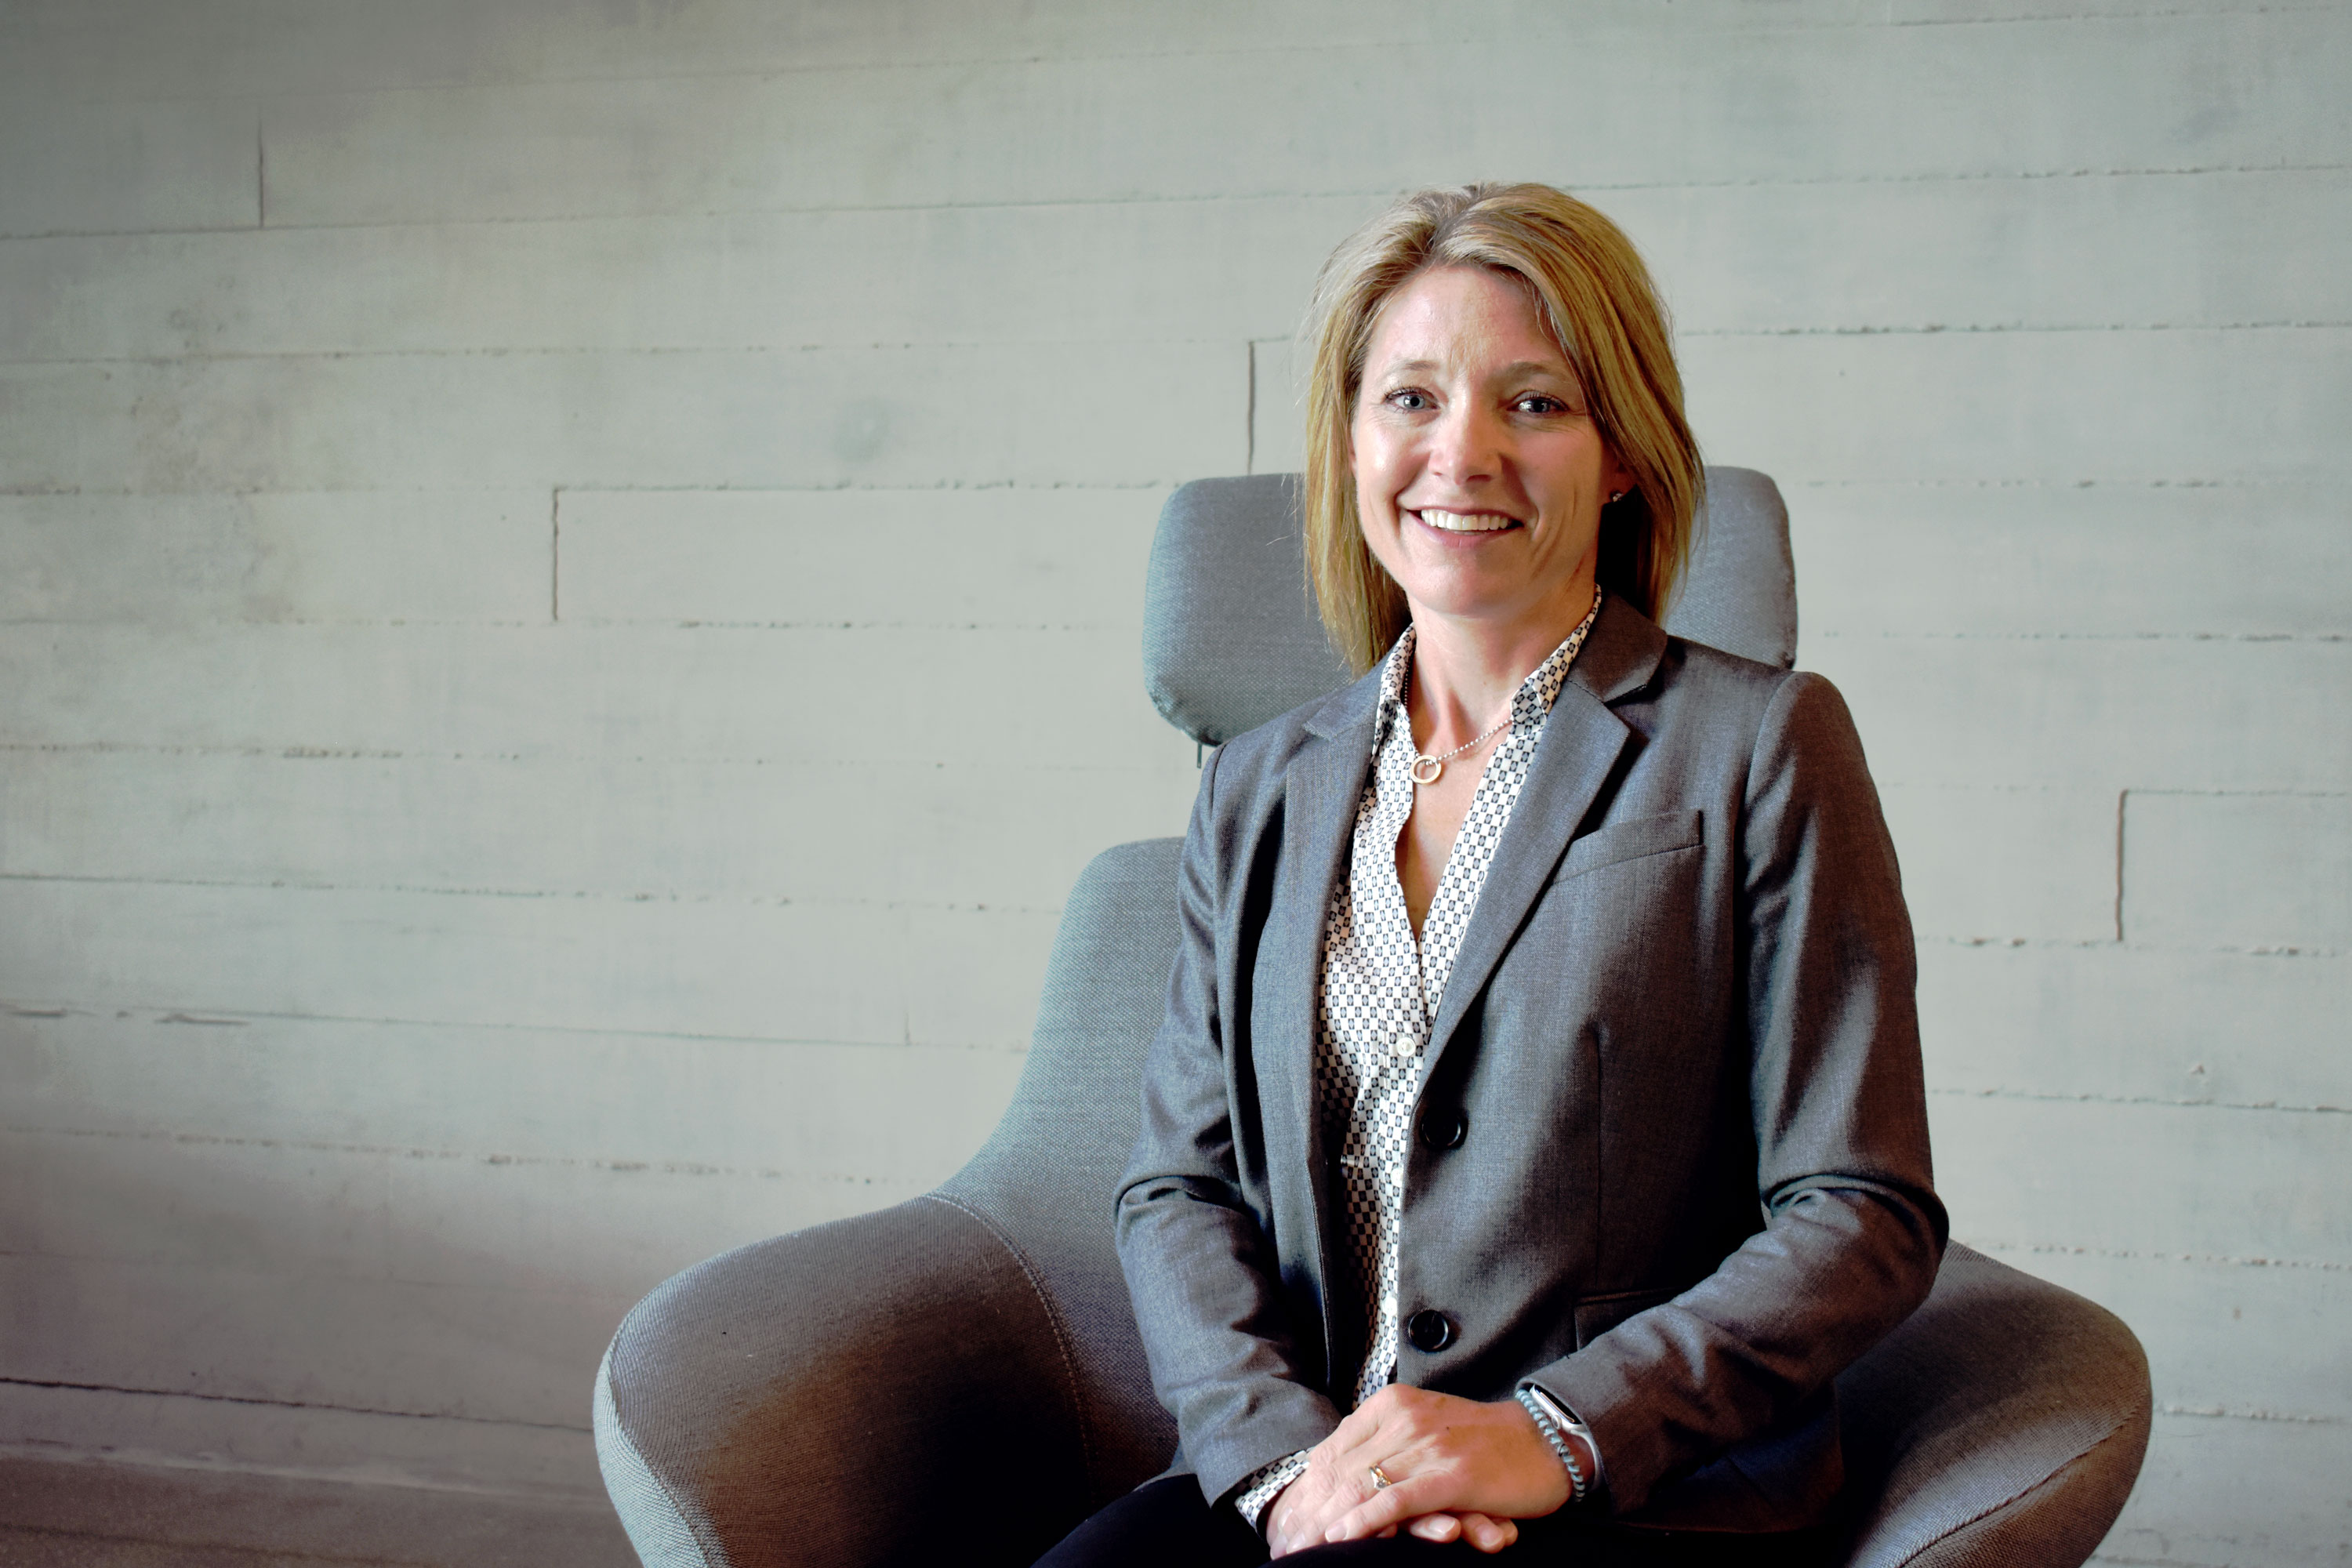 C.D. Smith Construction's Holly Brenner gives her insights on Sustainability technology costs & trends